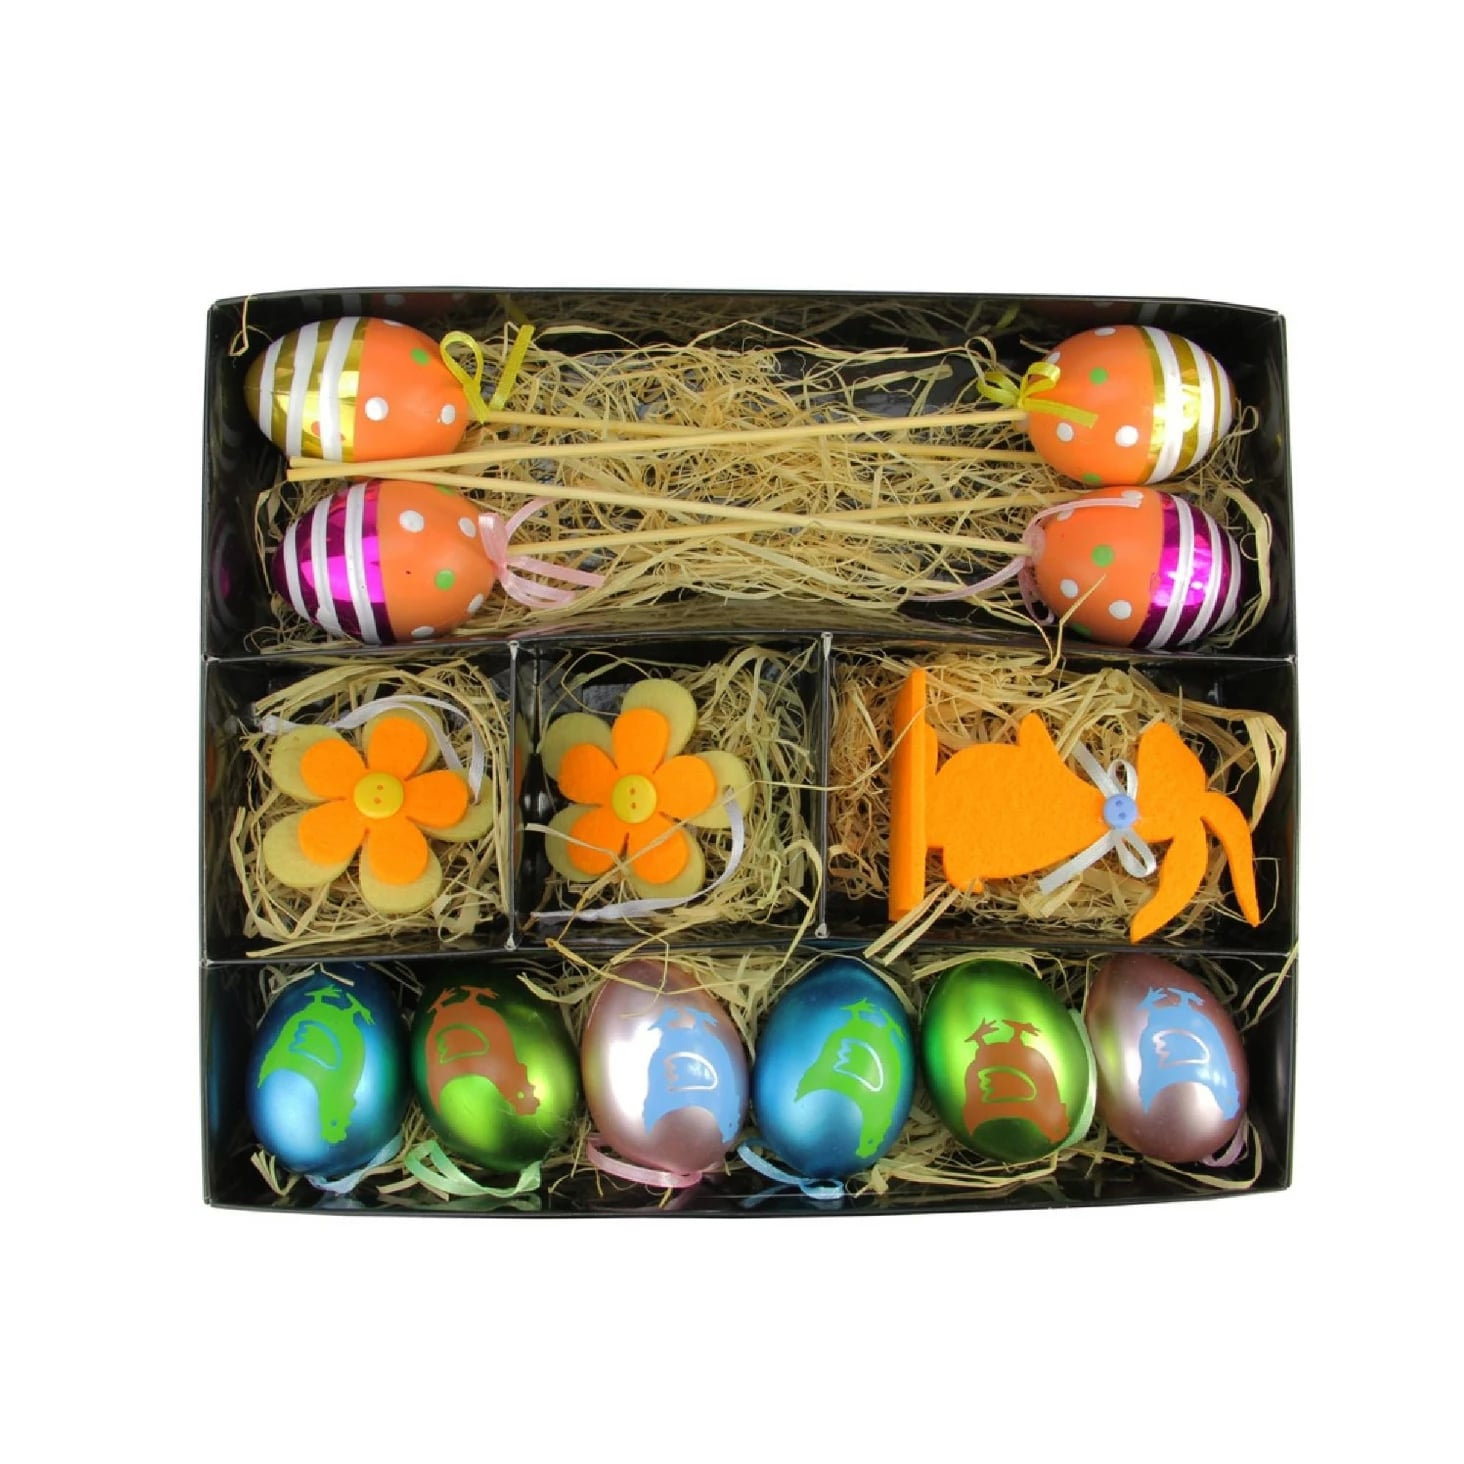 Metallic Easter Egg Flower And Bunny Spring Decorations